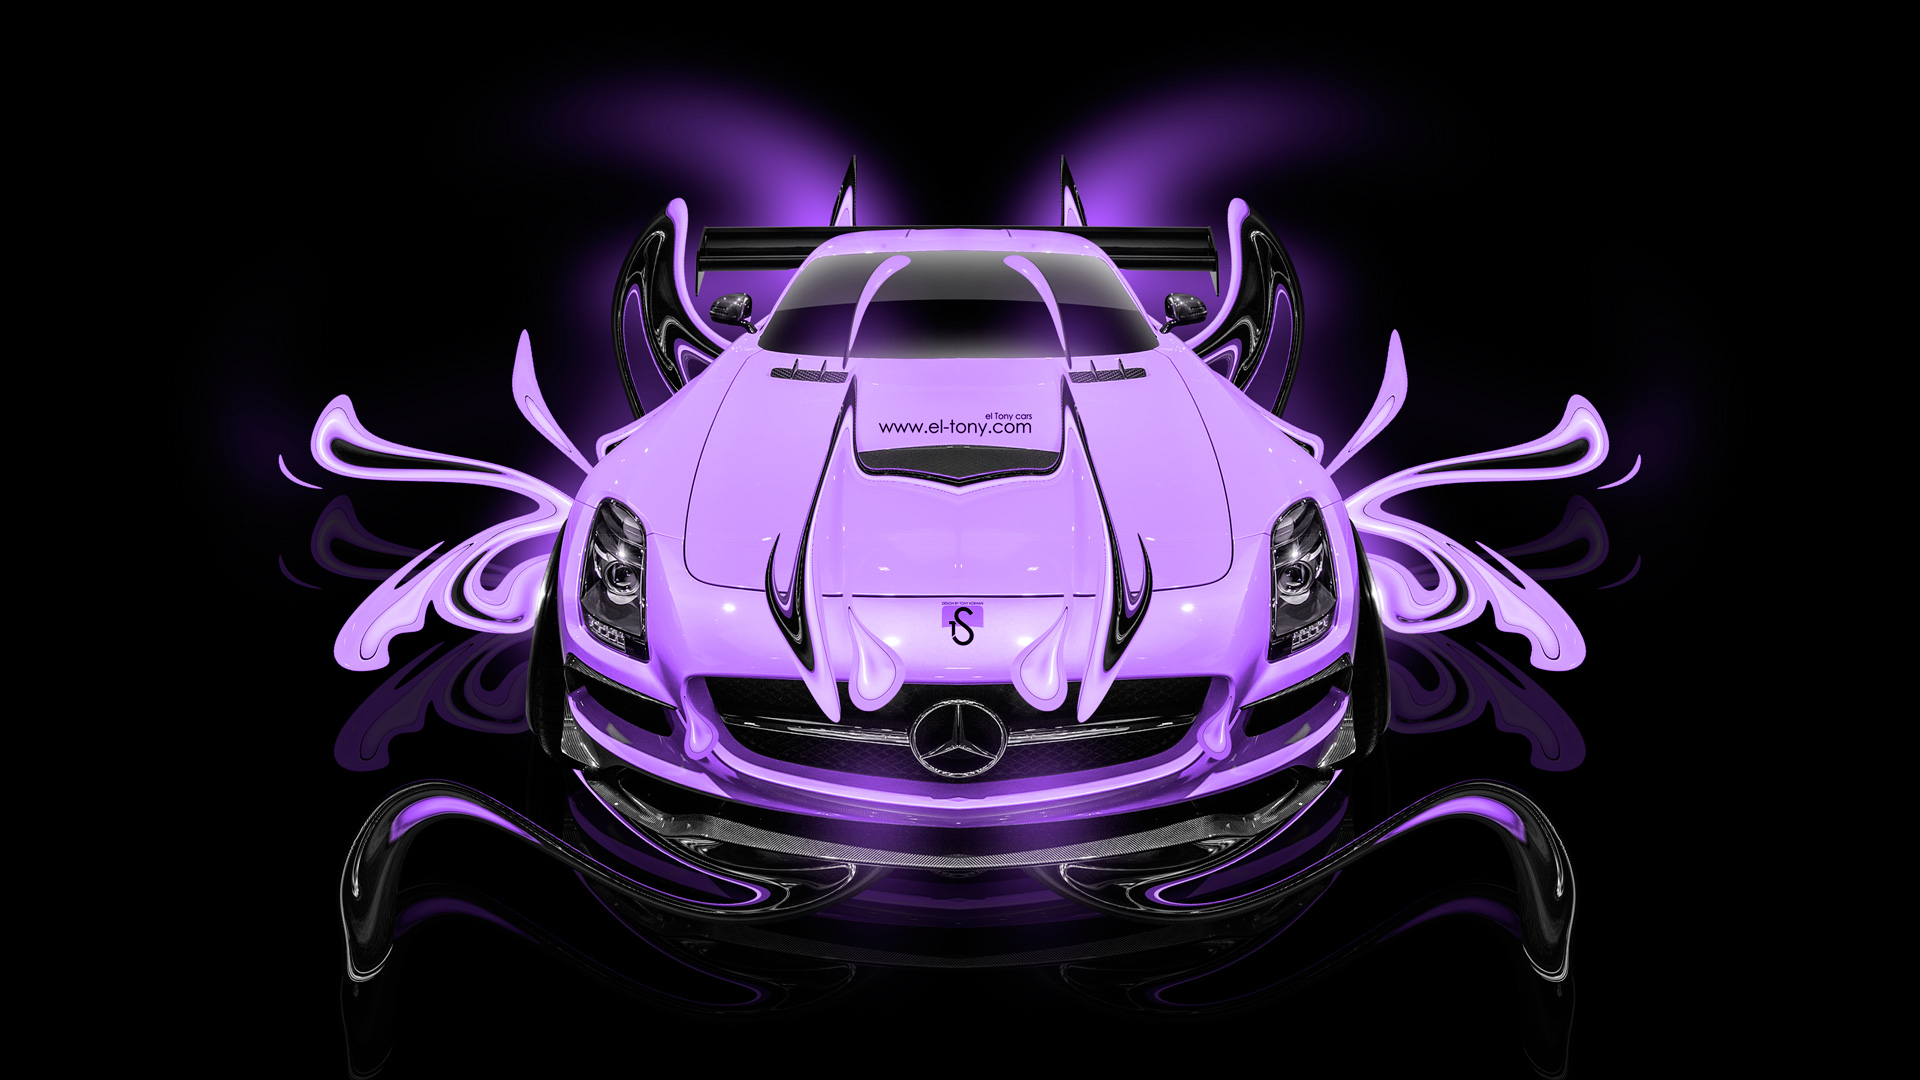 Mercedes Benz SLS AMG Fantasy Super Plastic Car 2014 | El Tony